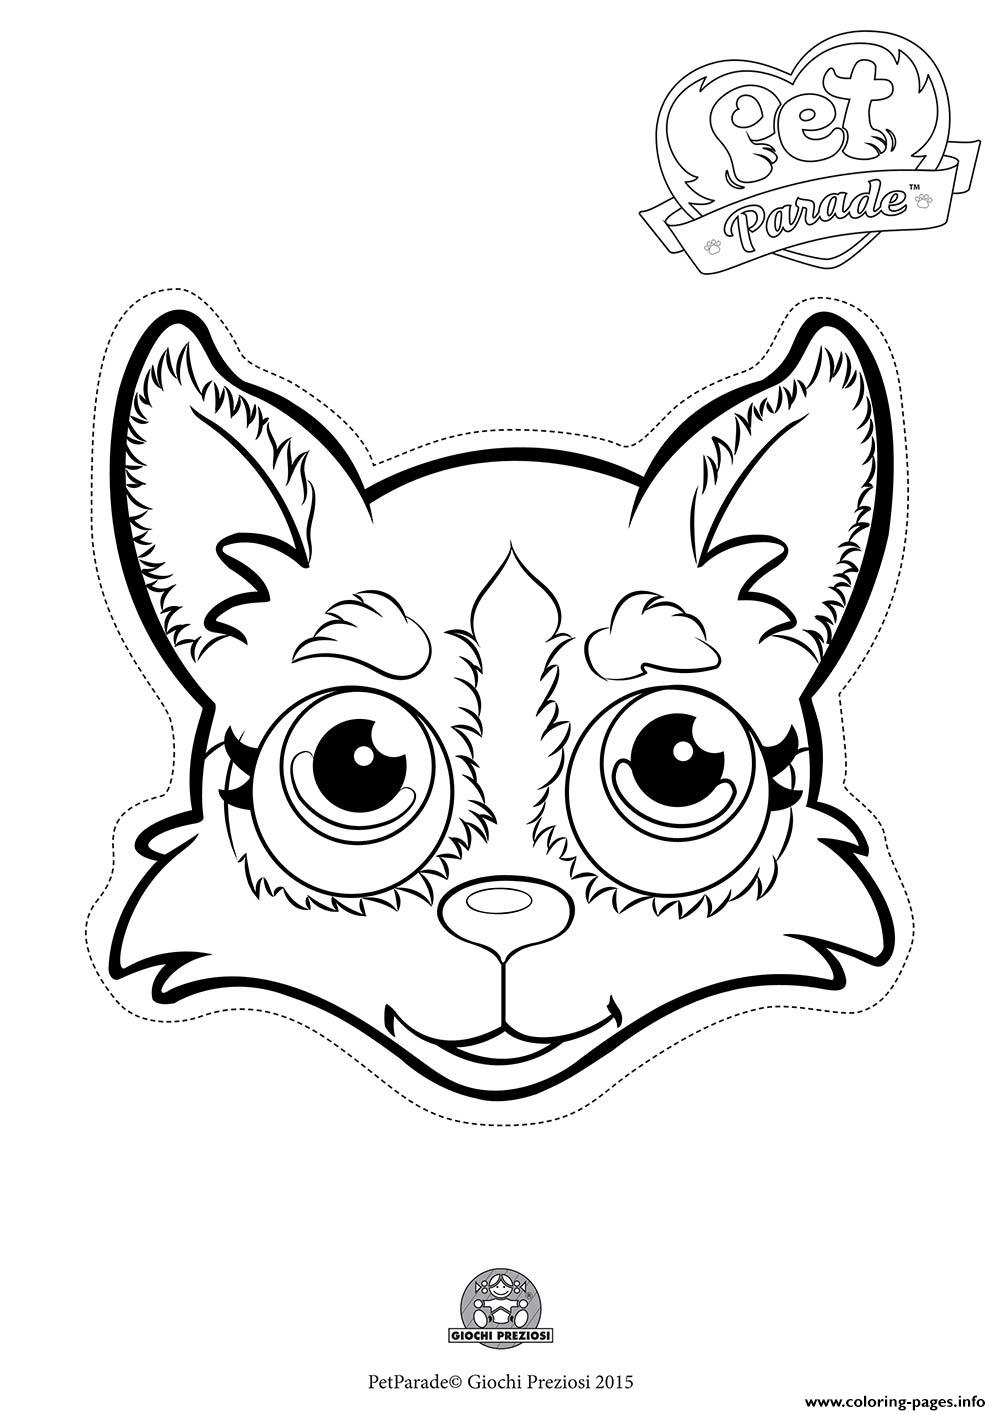 Parade coloring pages to print for adults - Pet Parade Cute Dog Husky 2 Coloring Pages Print Download 325 Prints